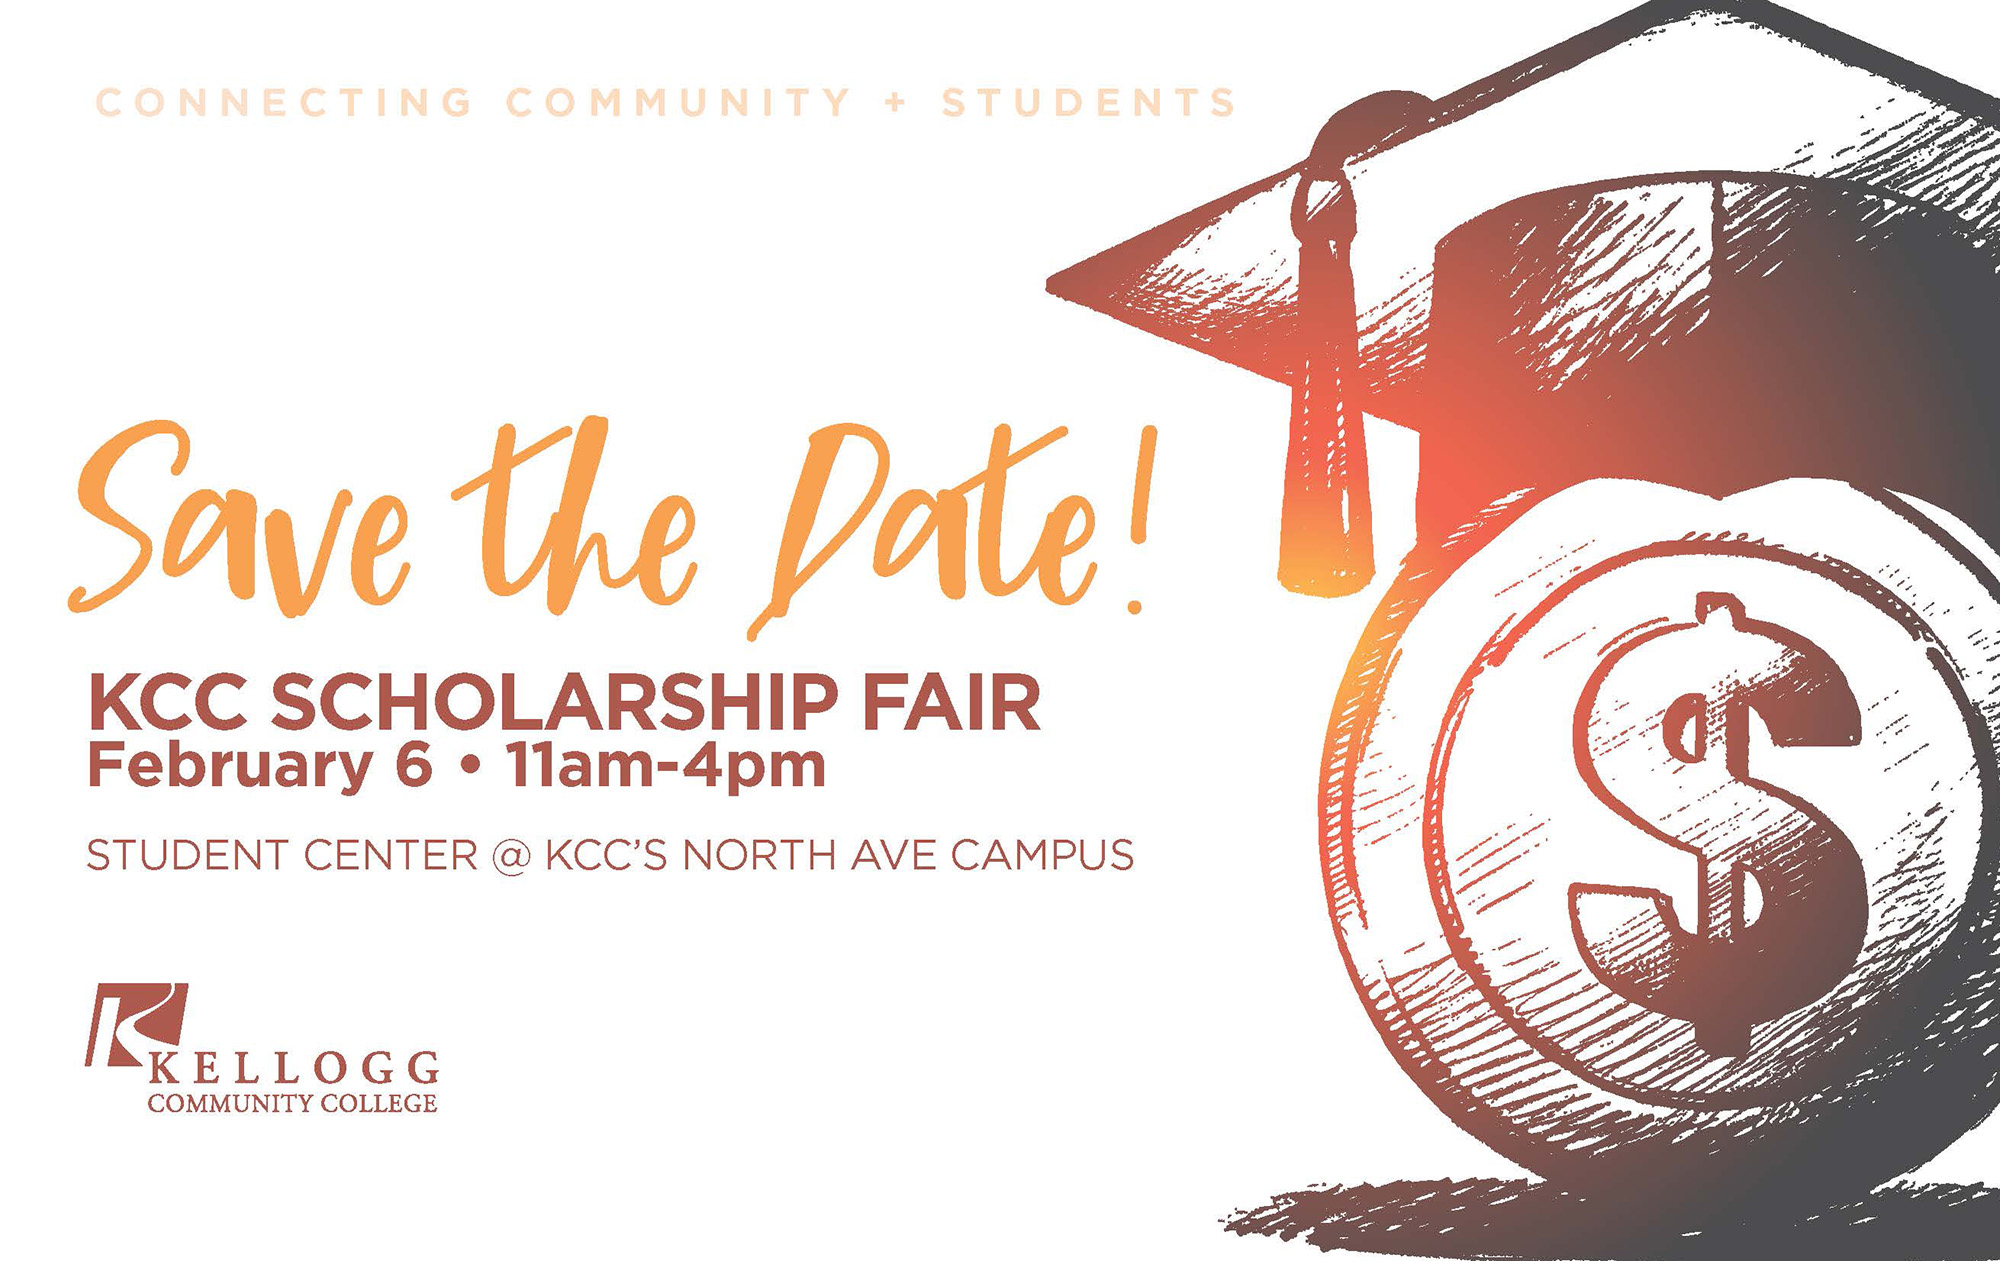 An illustration of a money sign with a graduation cap on illustrates a text slide promoting KCC's Scholarship Fair.